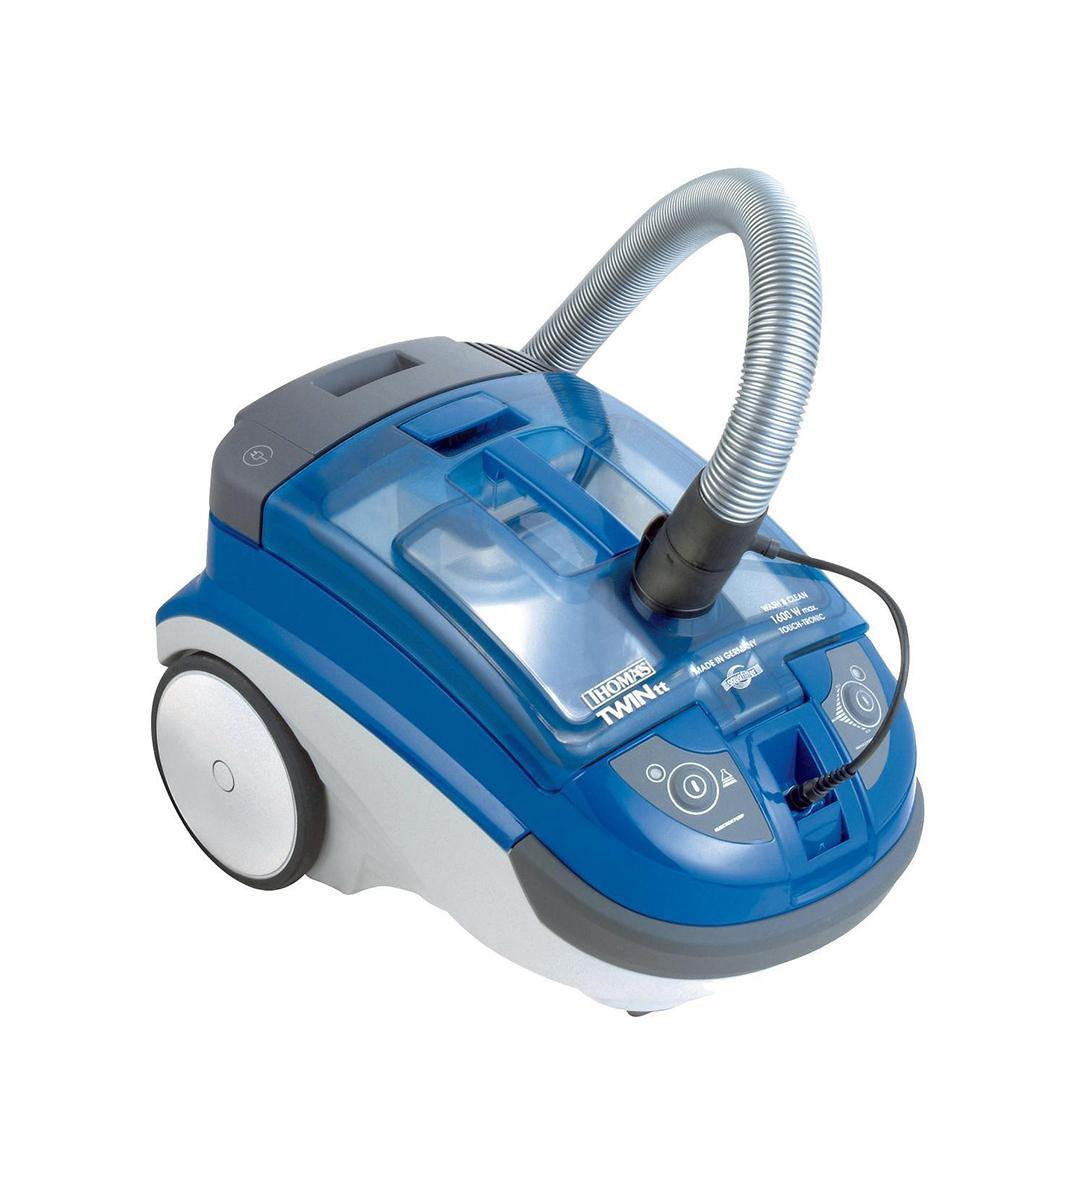 Thomas 788535 Twin TT Aquafilter моющий пылесос thomas twin t1 aquafilter 788 550